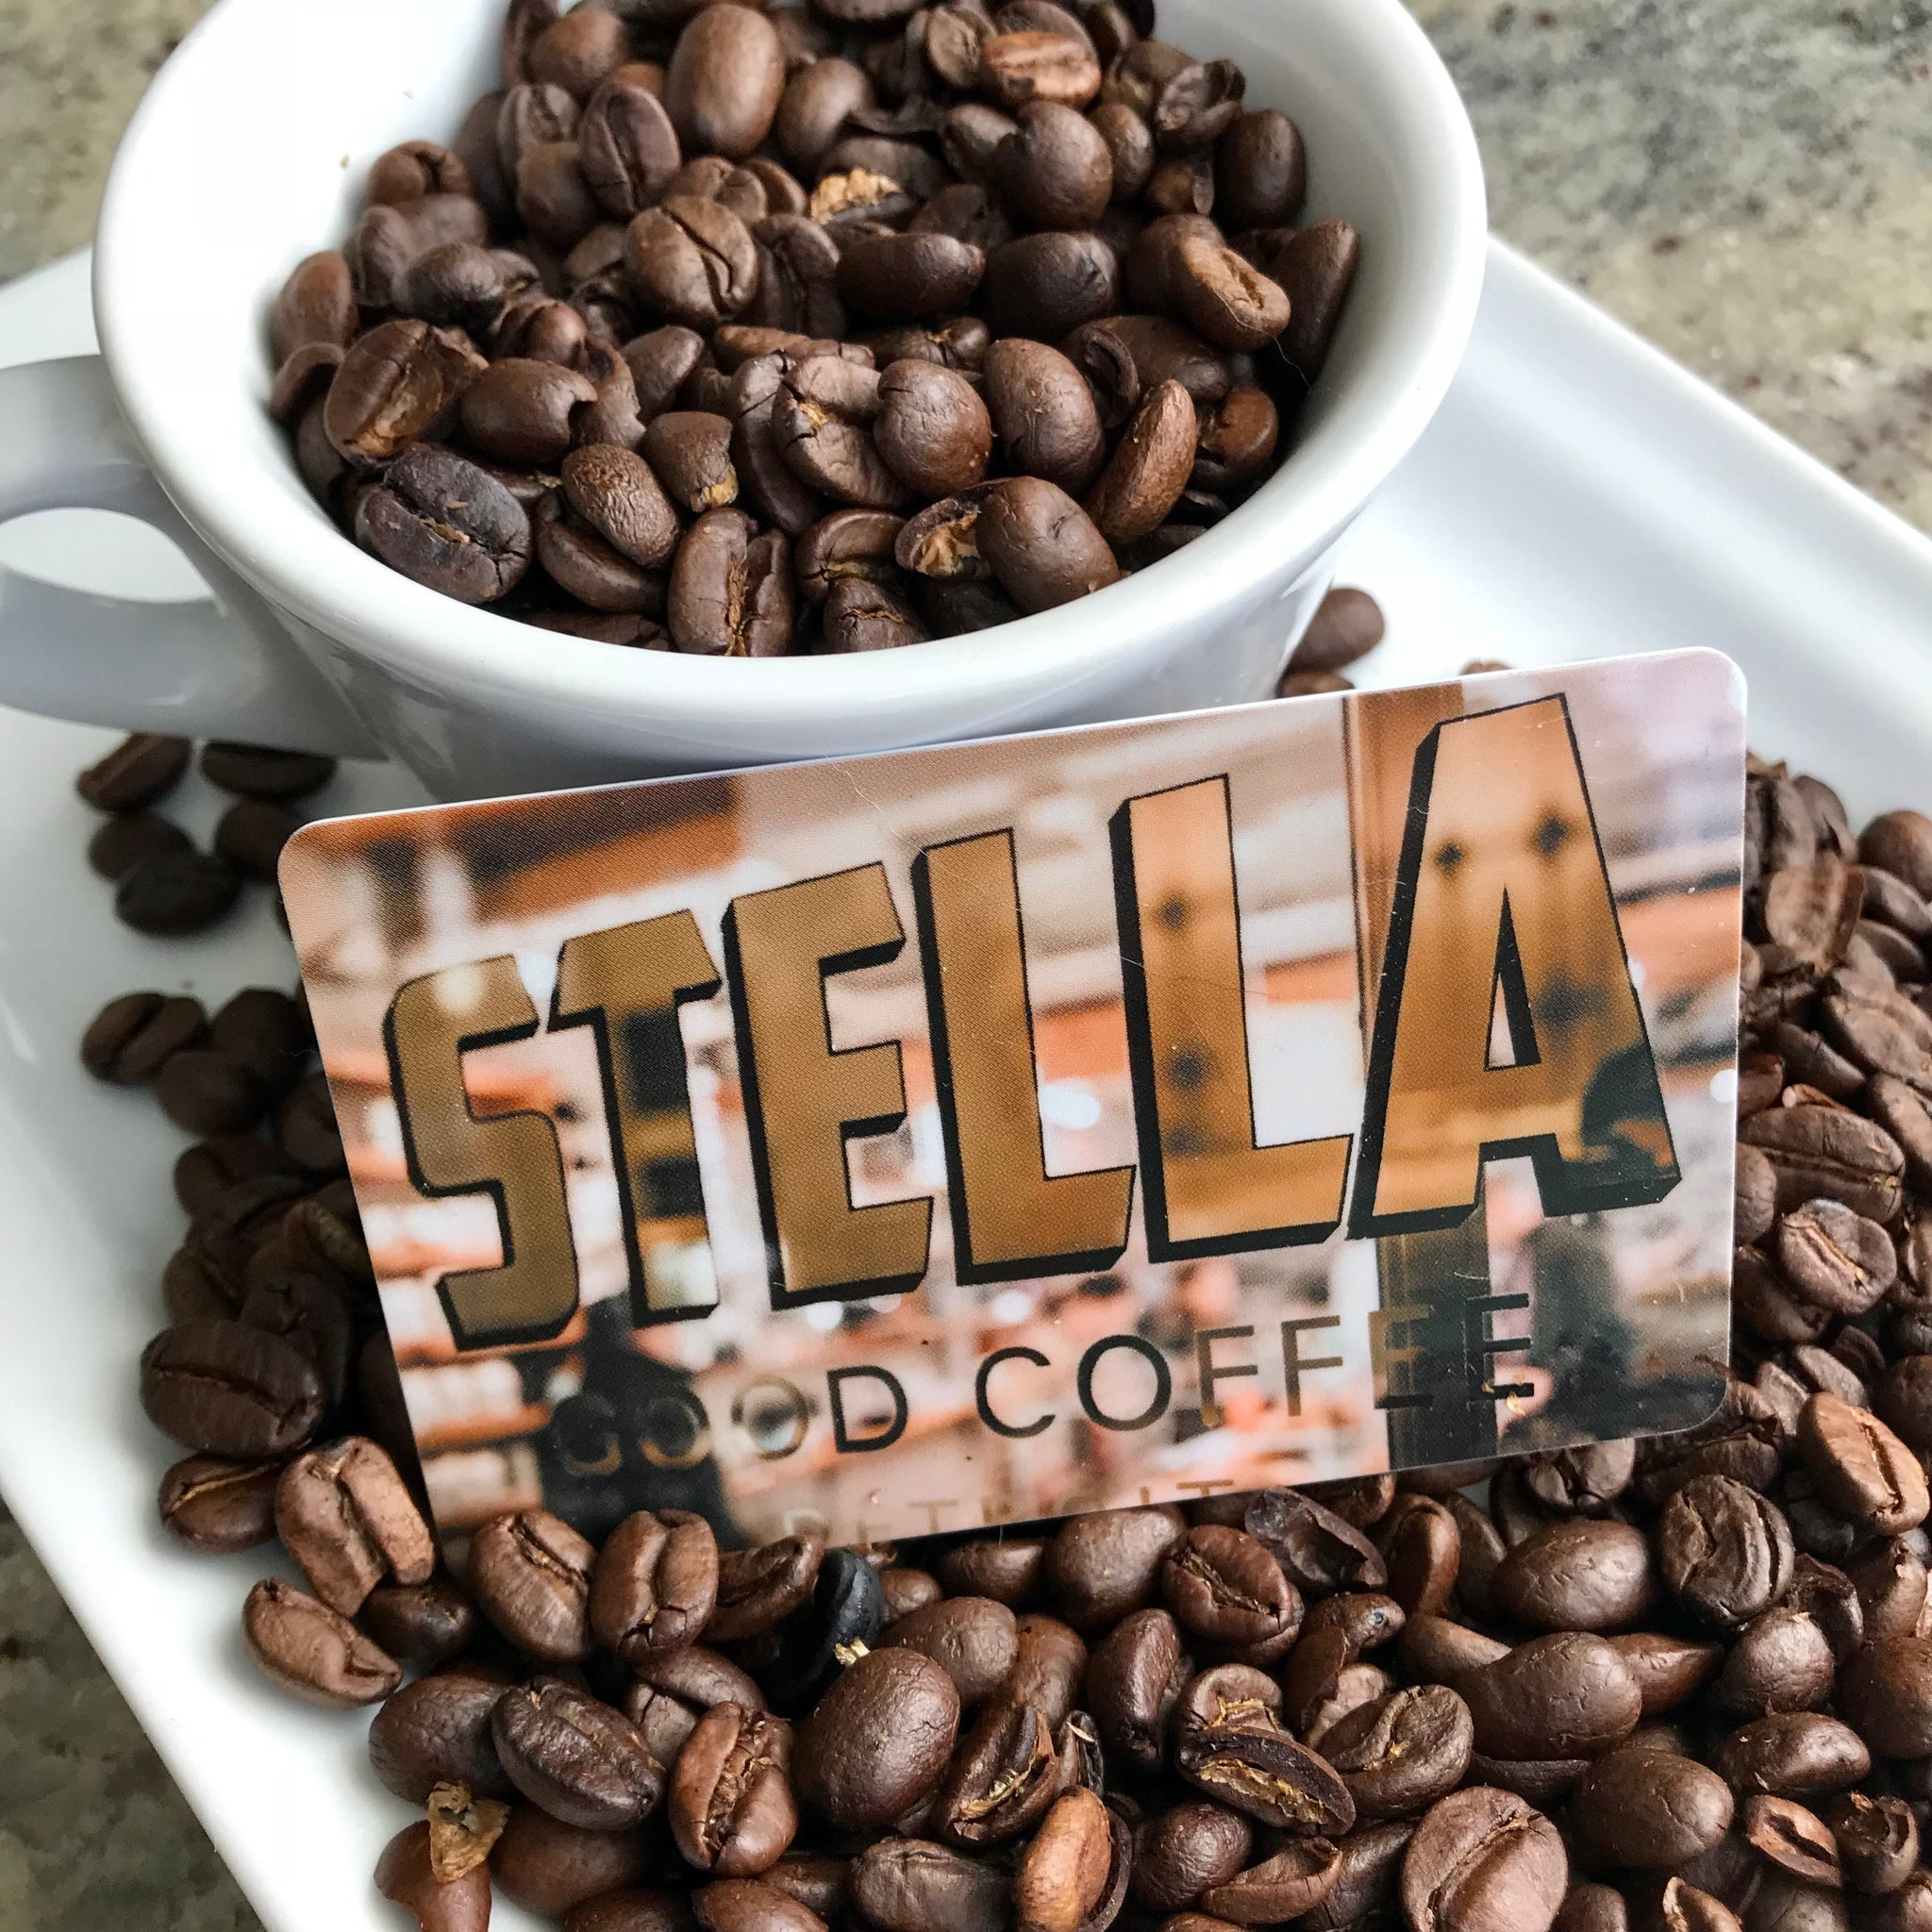 Stella Good Coffee Gift Card - $25 - Pure Detroit